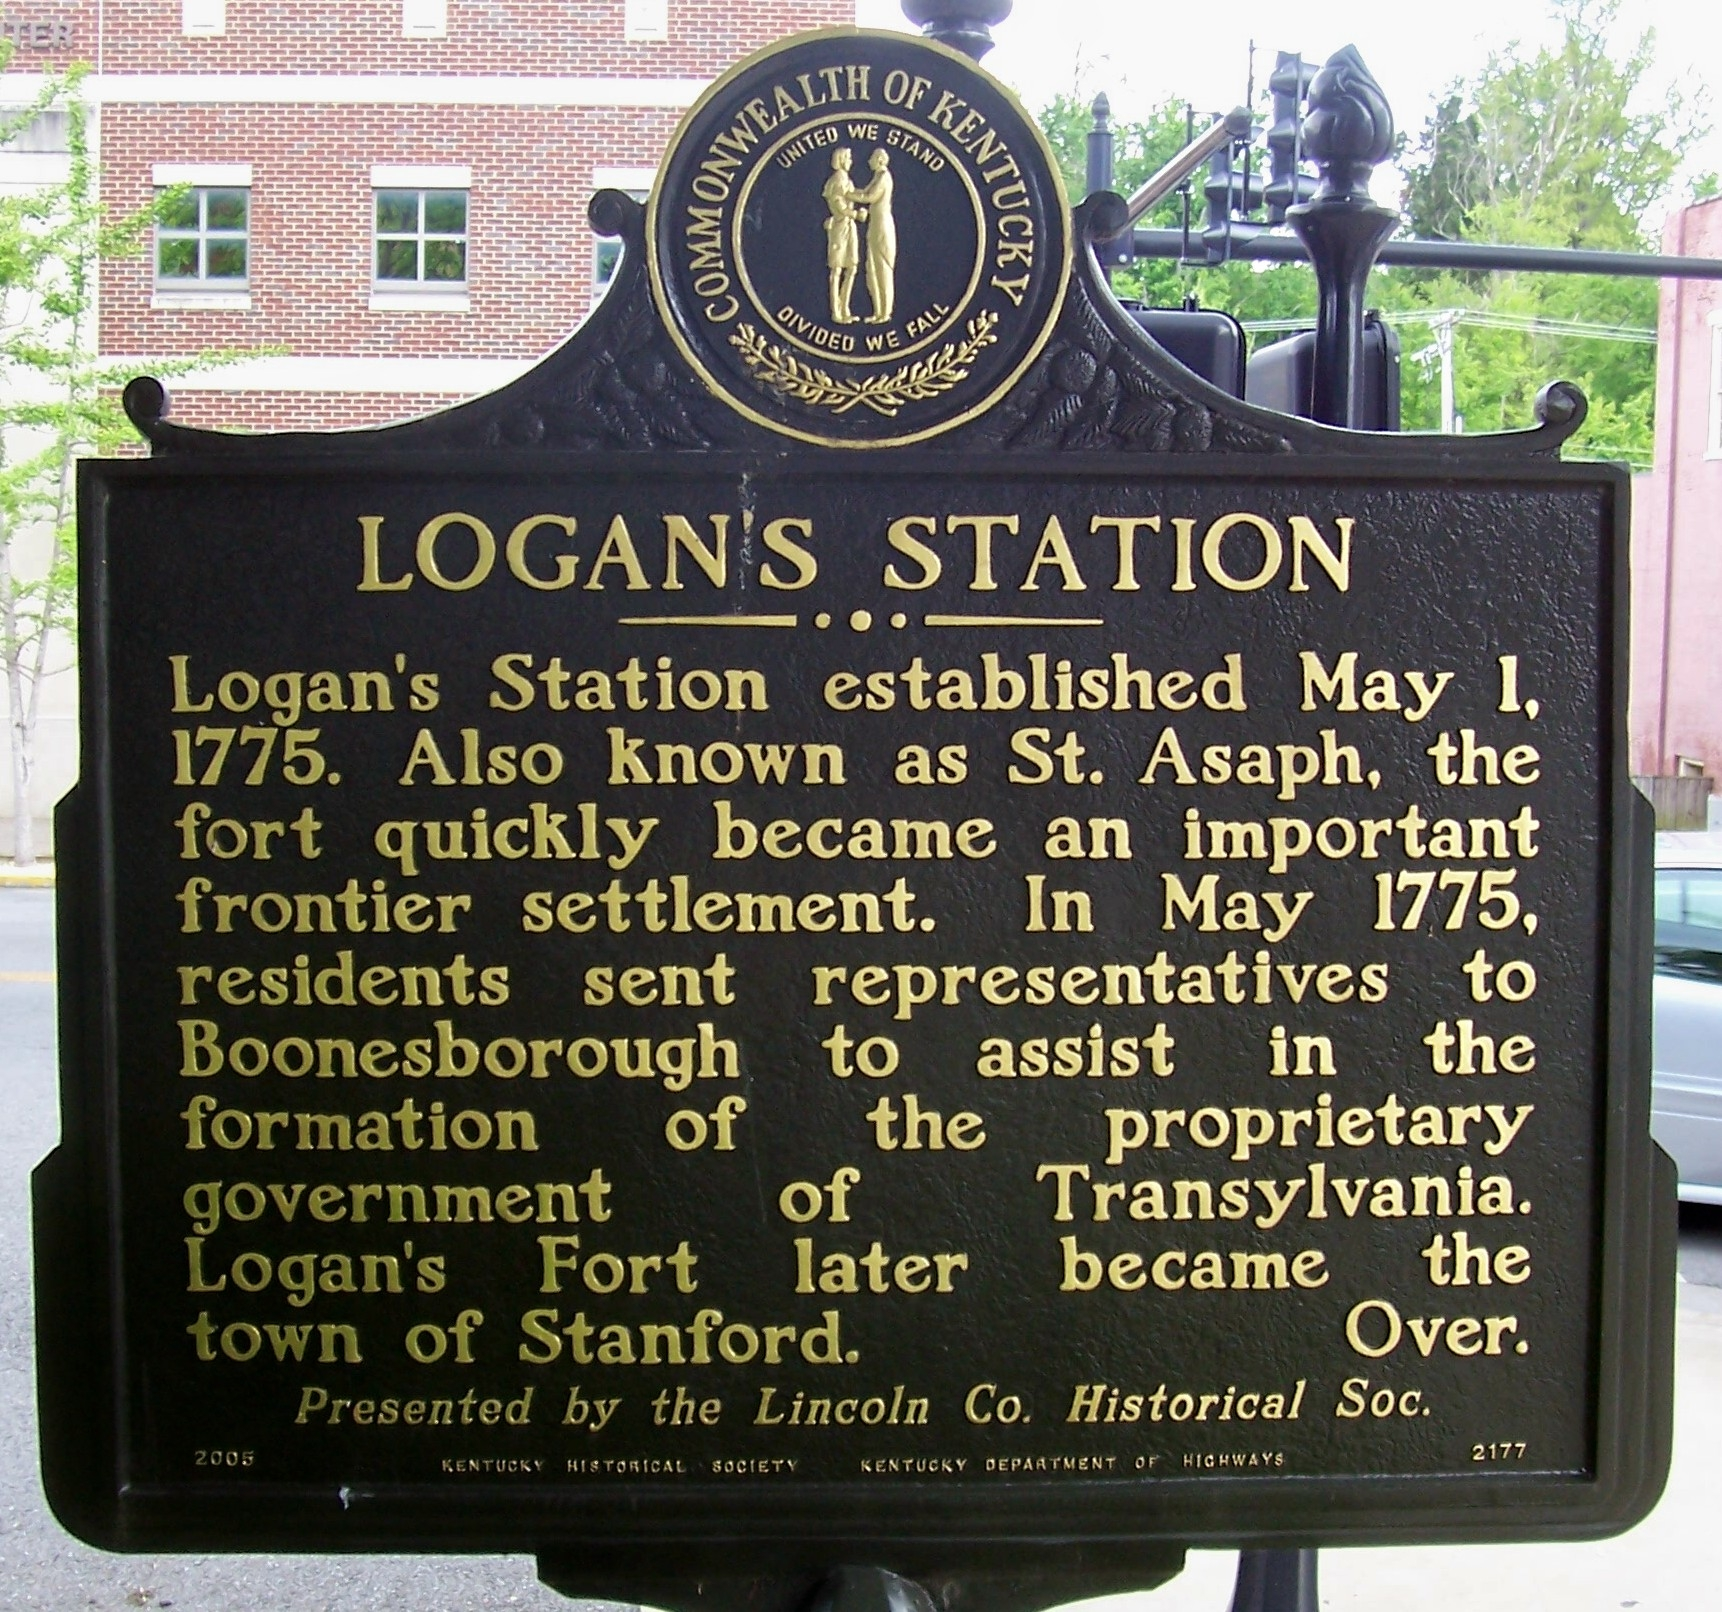 Logan's Station Side of the Marker